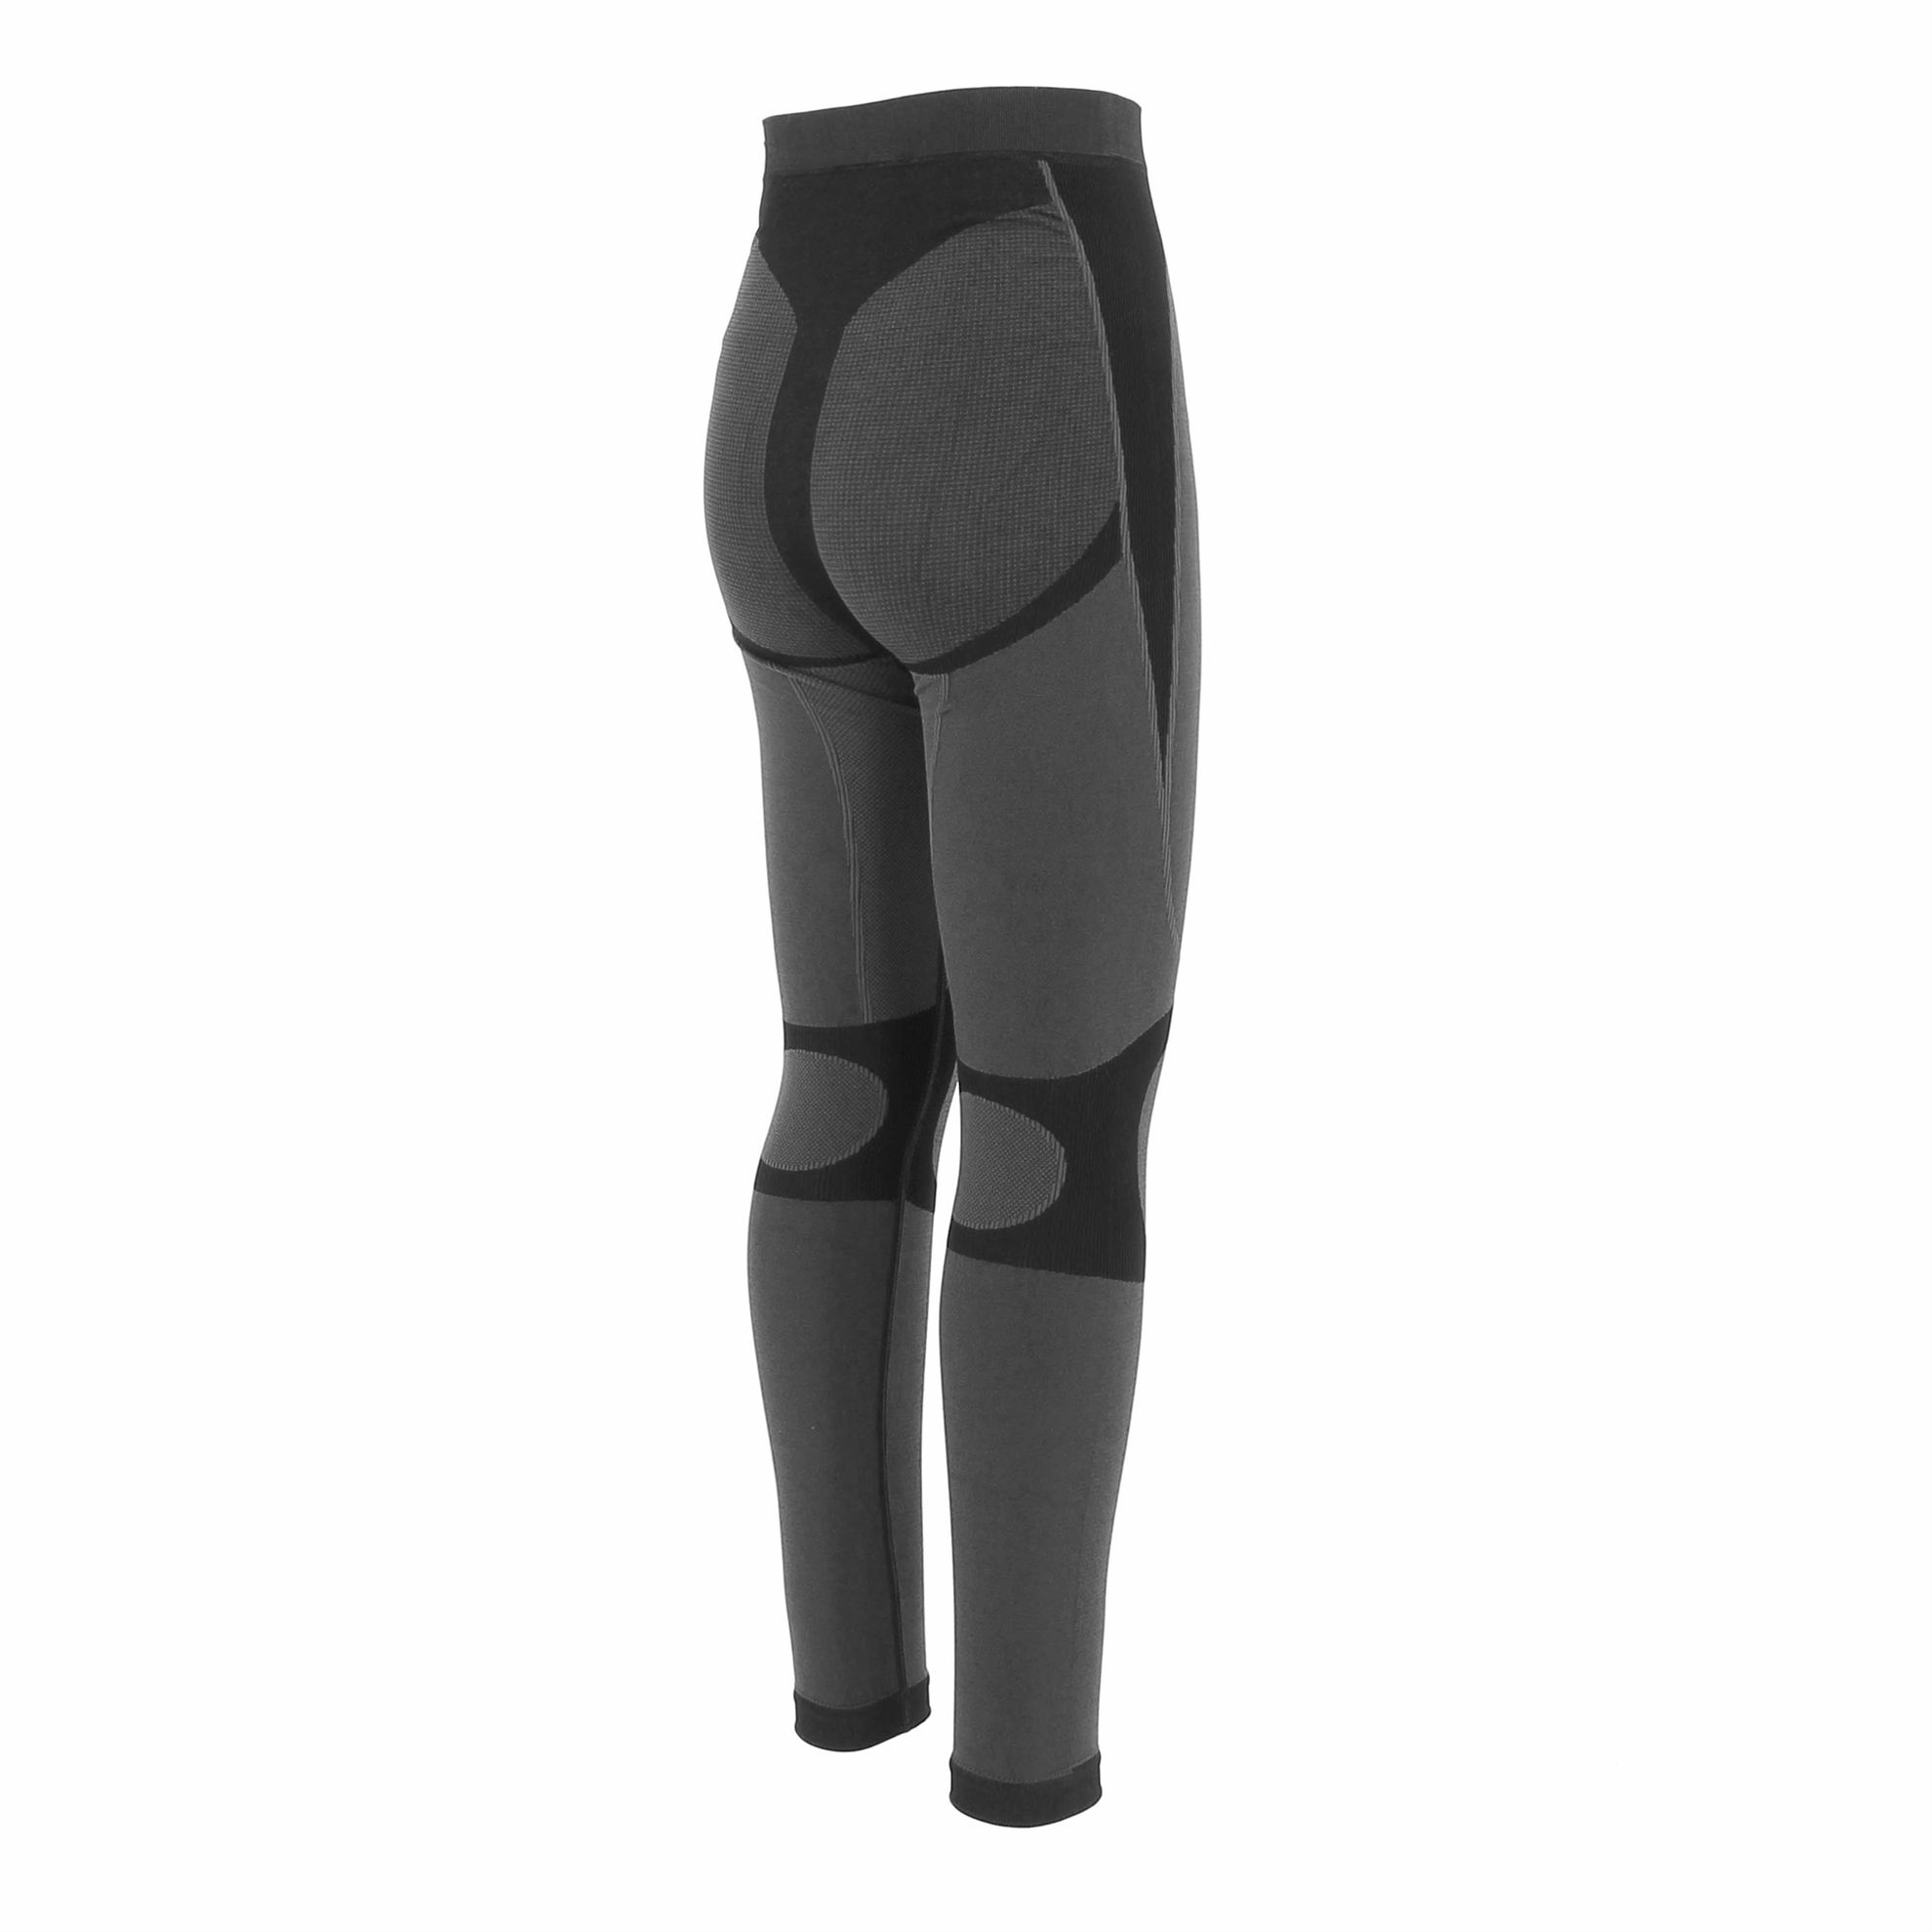 Immagine di BRUGI - LEGGINGS INTIMO TERMICO JR BOY BLACK